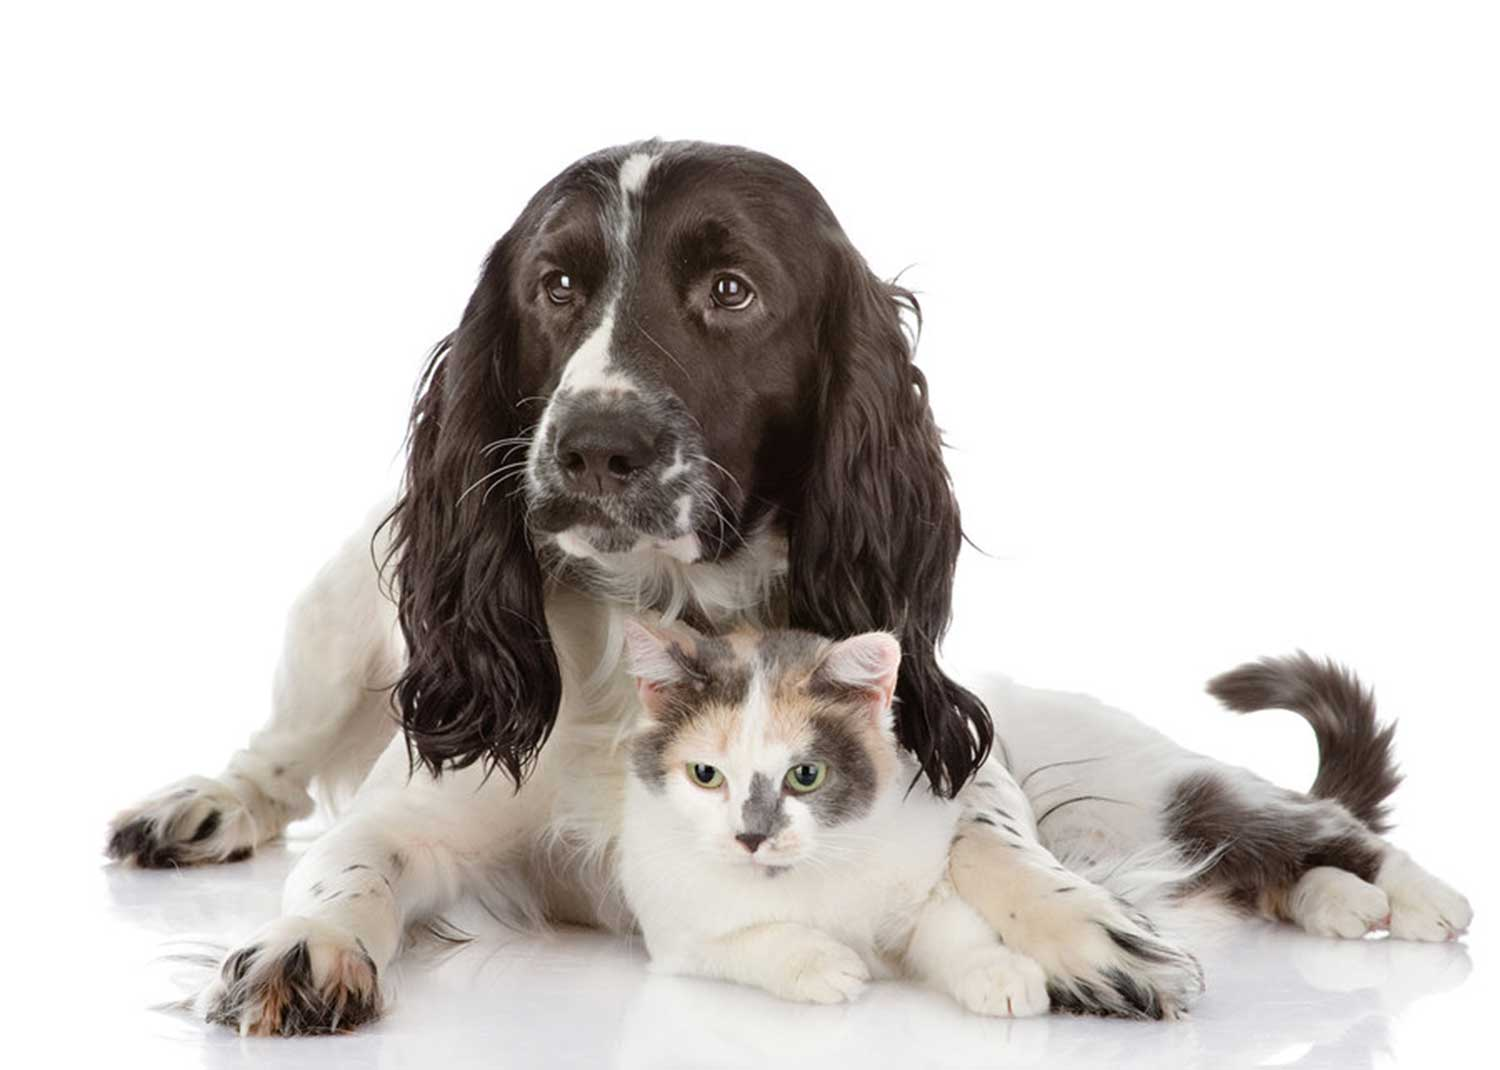 Cavalier King Charles Spaniel dog and a cat